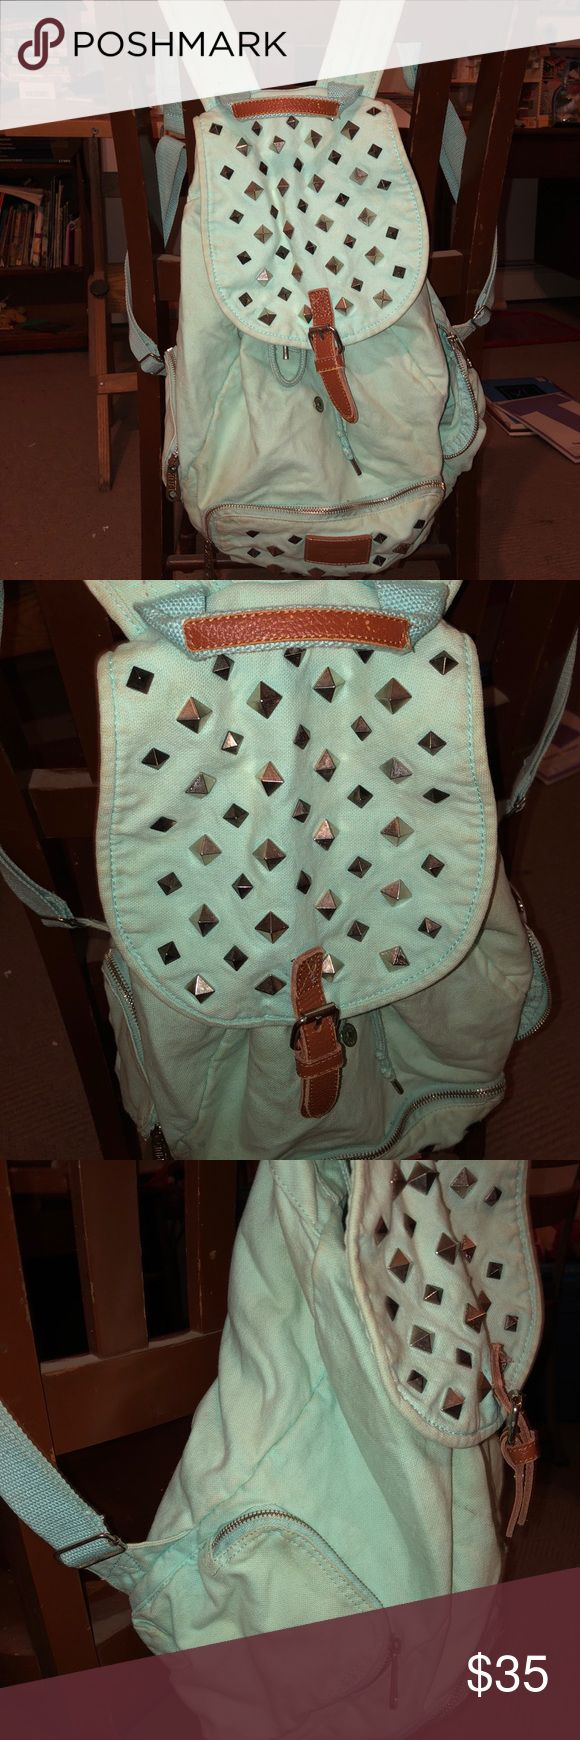 "Victoria's Secret ""pink"" mint backpack Mint/Studded silver backpack. Pink by Victoria's Secret. Good condition just missing the magnet that clips the bag together.(last picture) PINK Victoria's Secret Bags Backpacks"